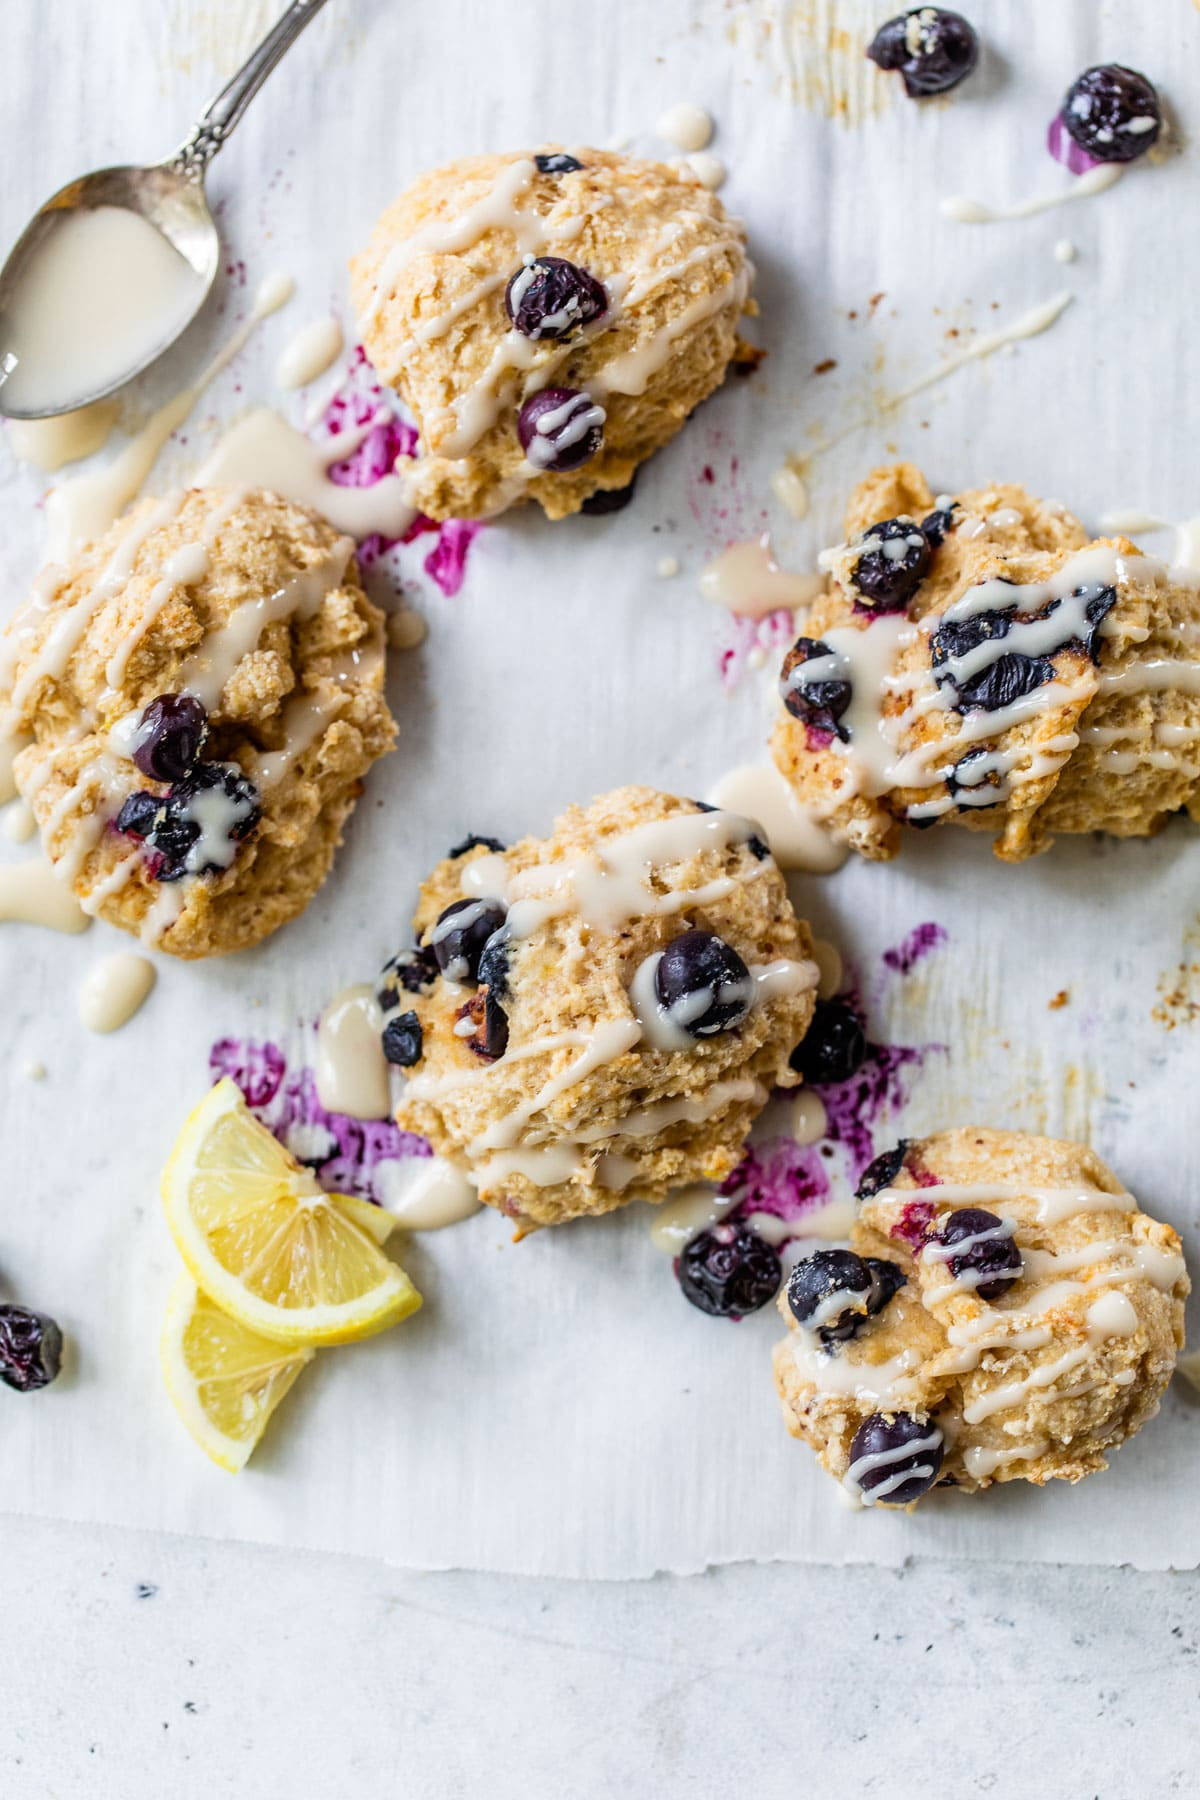 Fluffy healthy blueberry biscuits with sweet lemon glaze